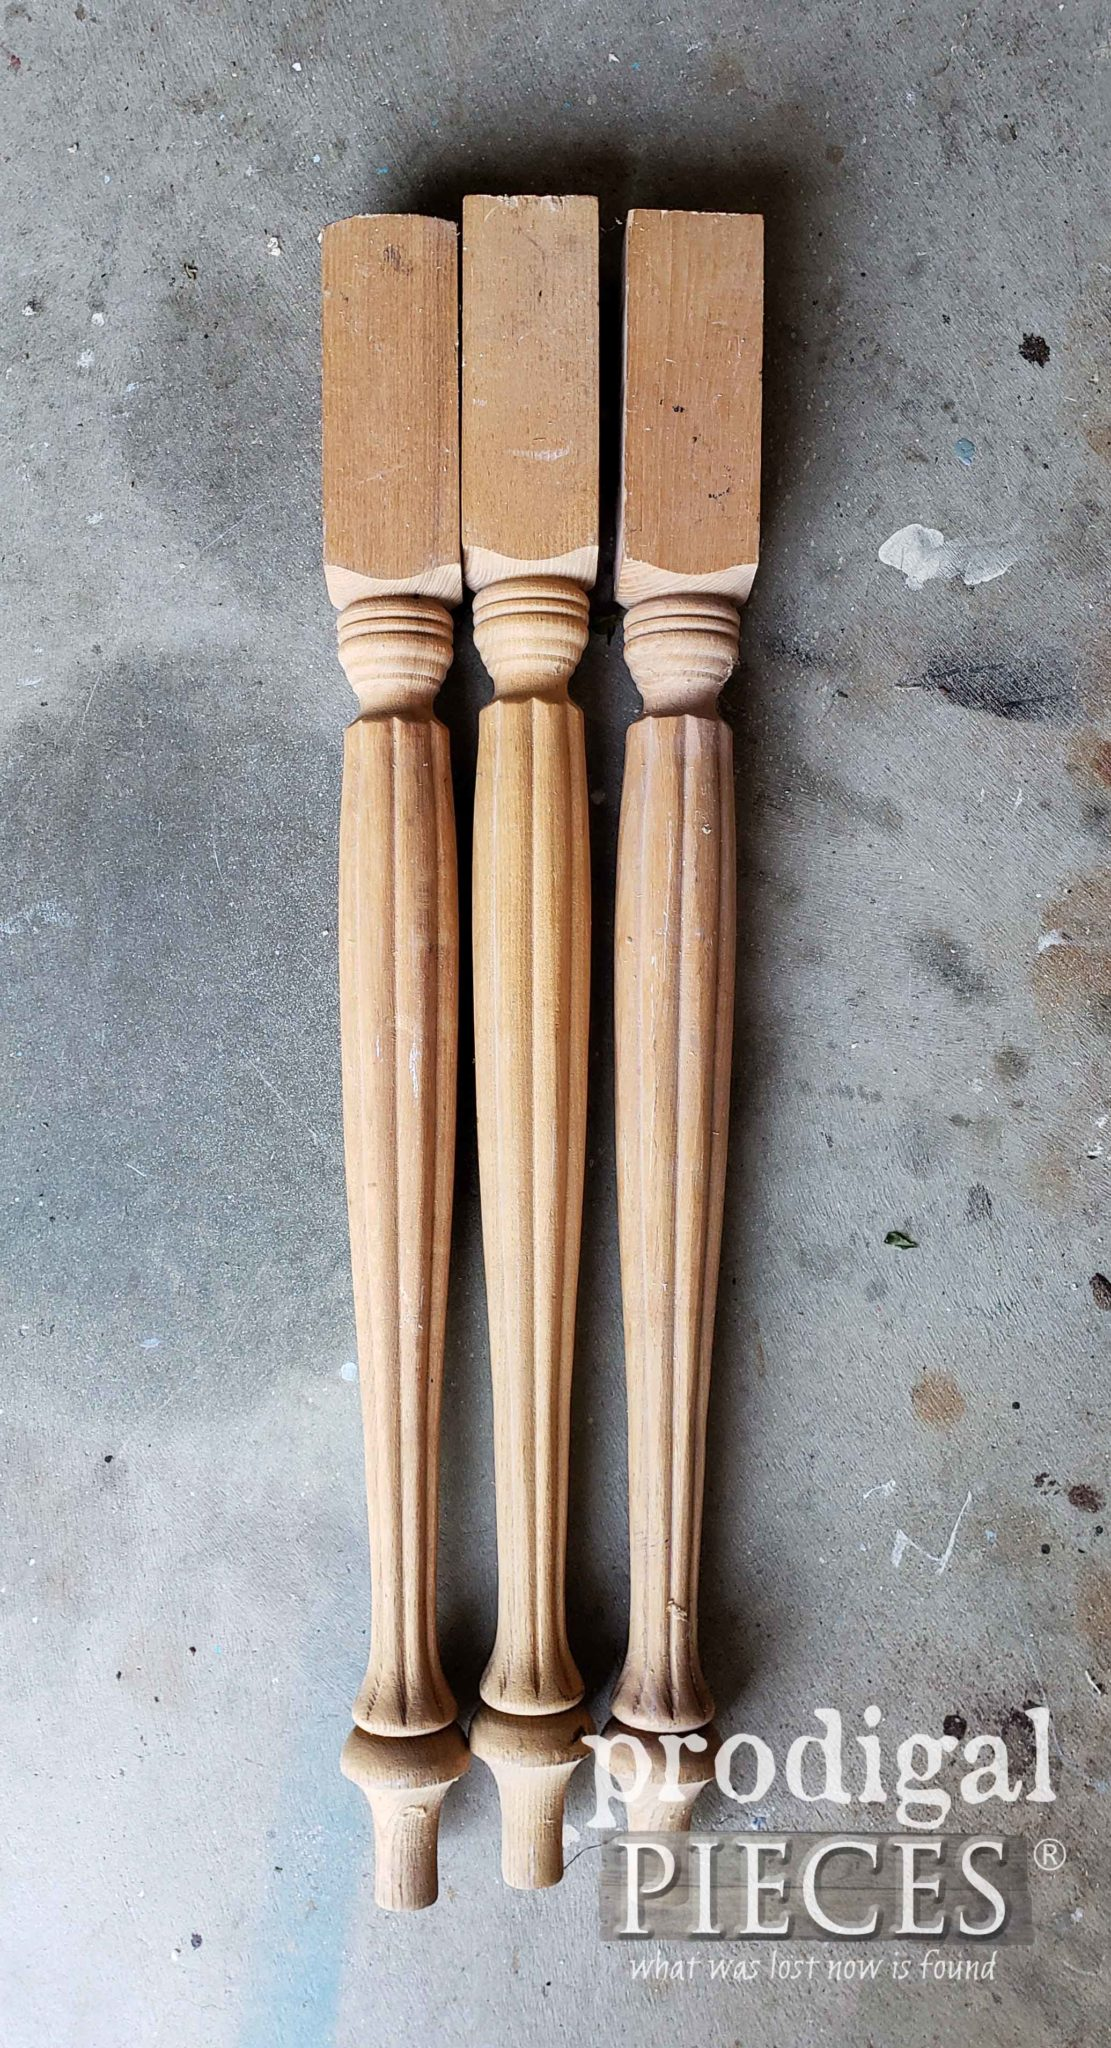 Set of 3 Unfinished Turned Wooden Table Legs found at Thrift Store by Larissa of Prodigal pieces | prodigalpieces.com